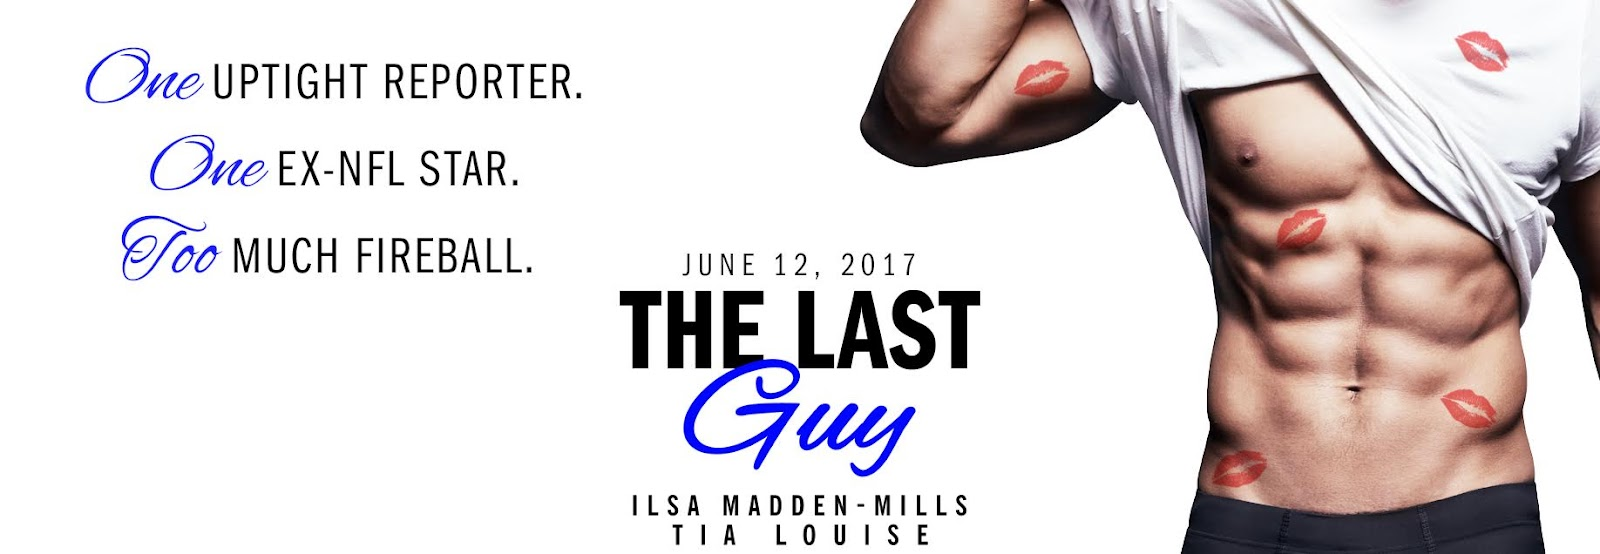 the last guy teaser 1.jpg